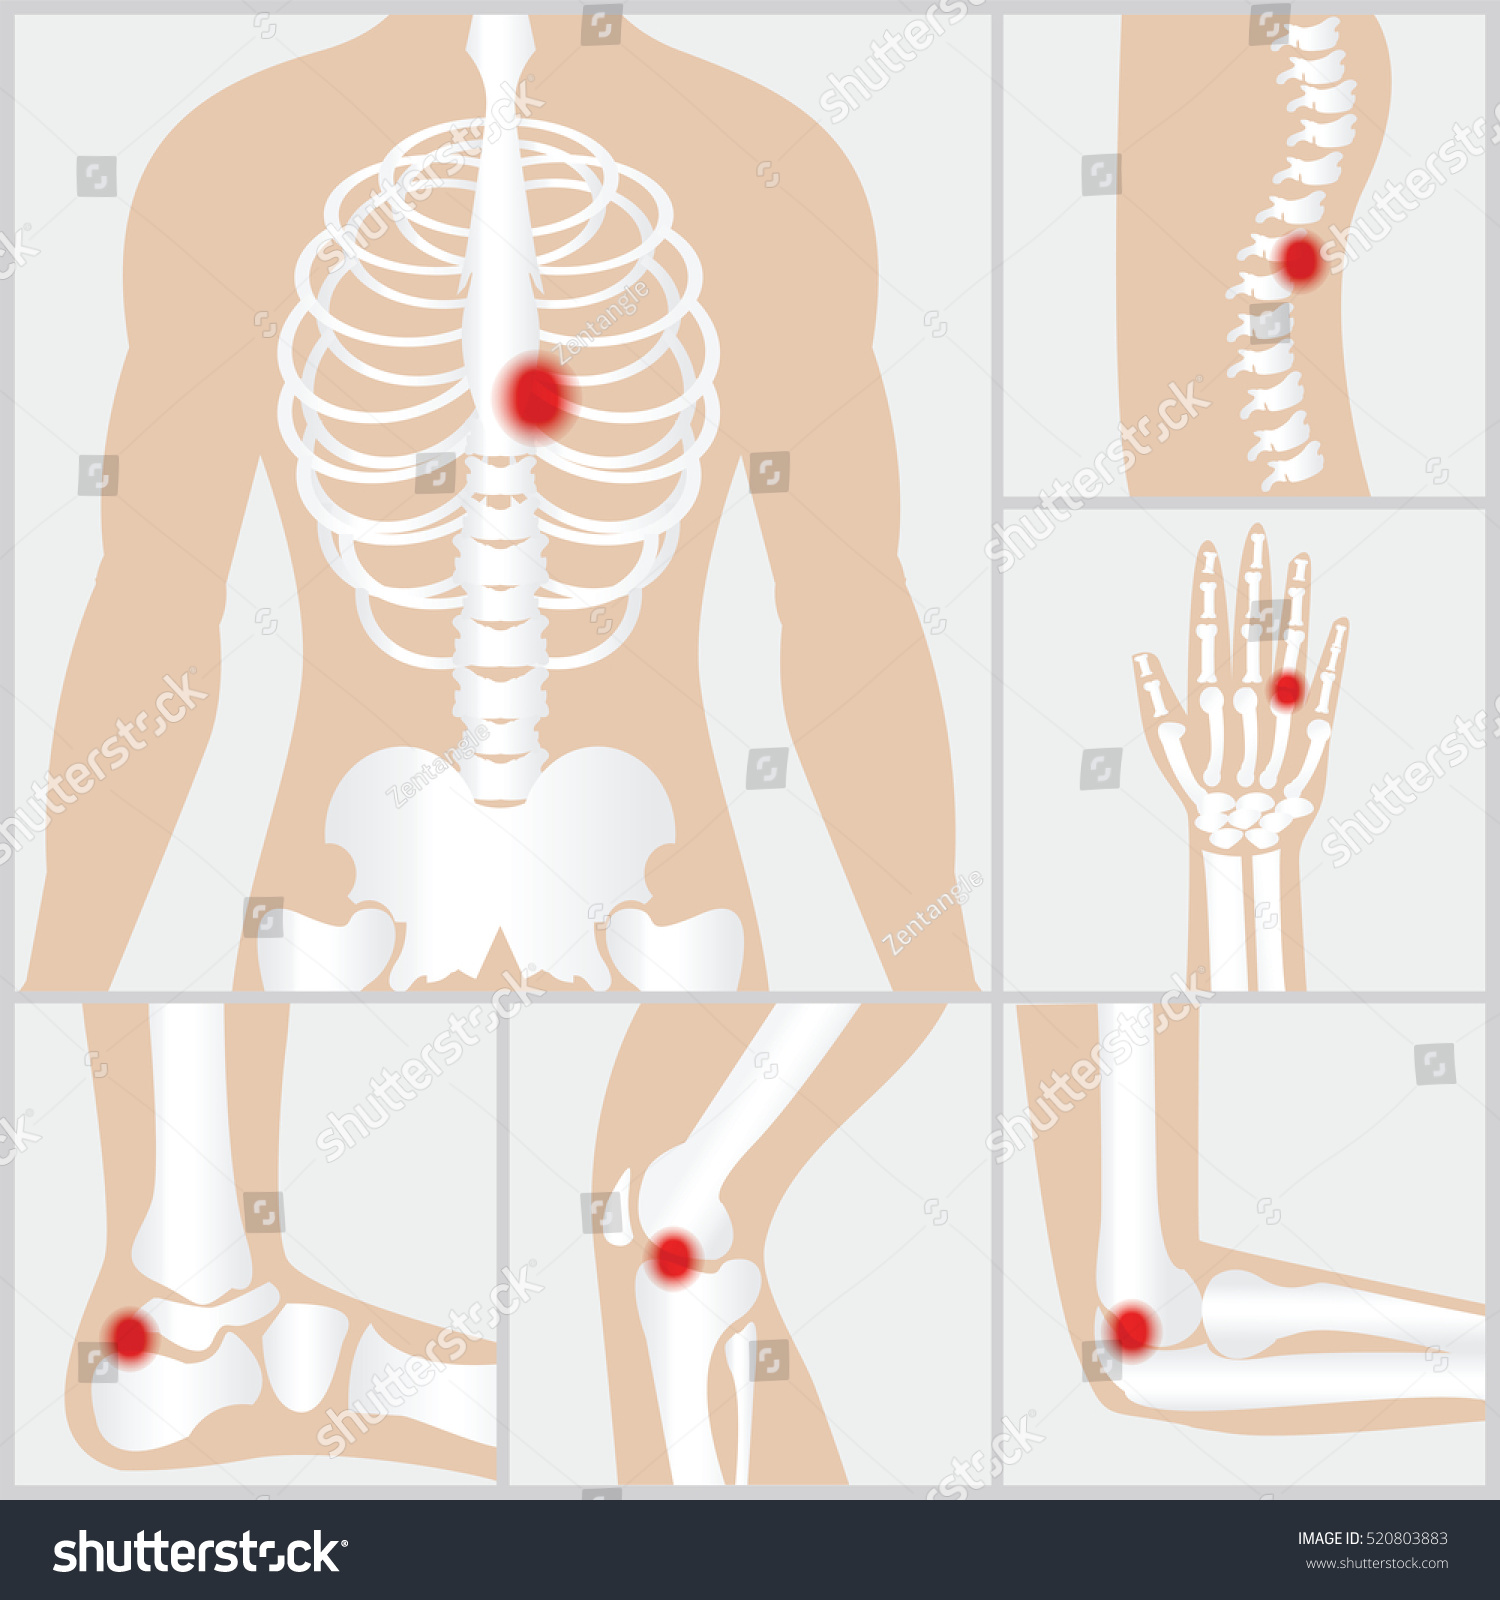 Disease Joints Boneshuman Joints Knee Joint Stock Vector 520803883 ...